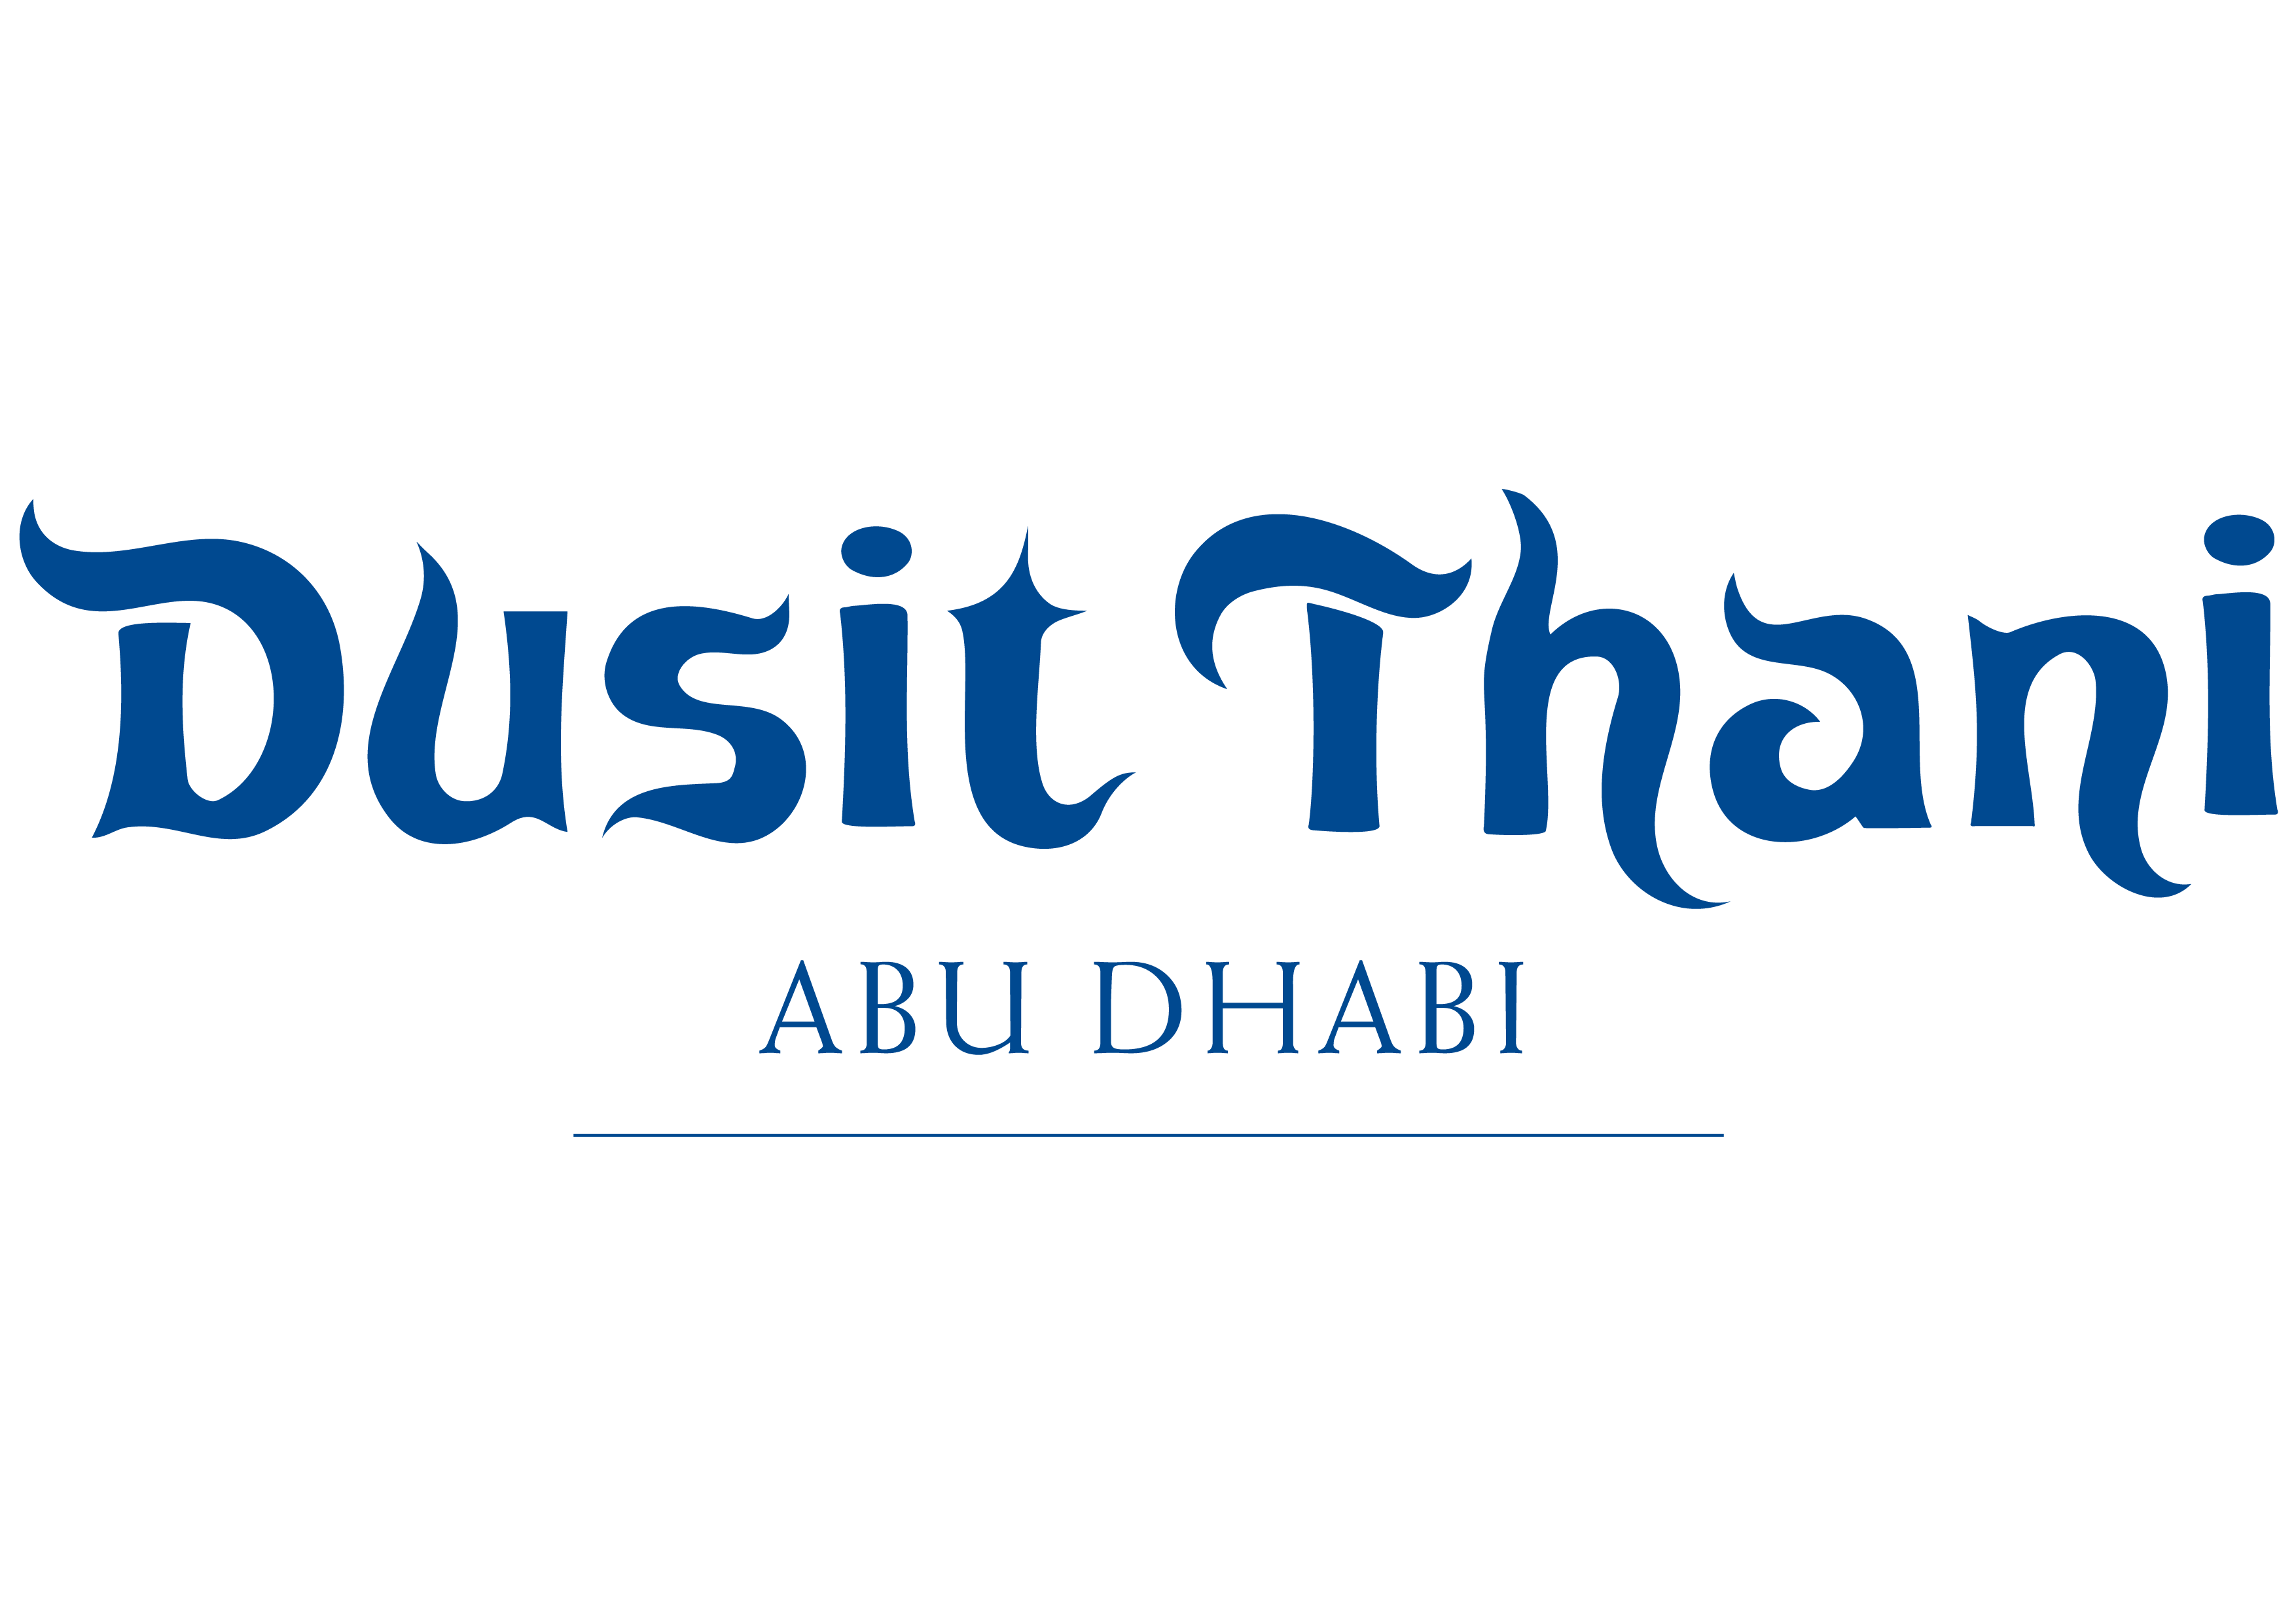 2017 Sec Champs >> Dusit Thani, Abu Dhabi | Make Dream into Reality